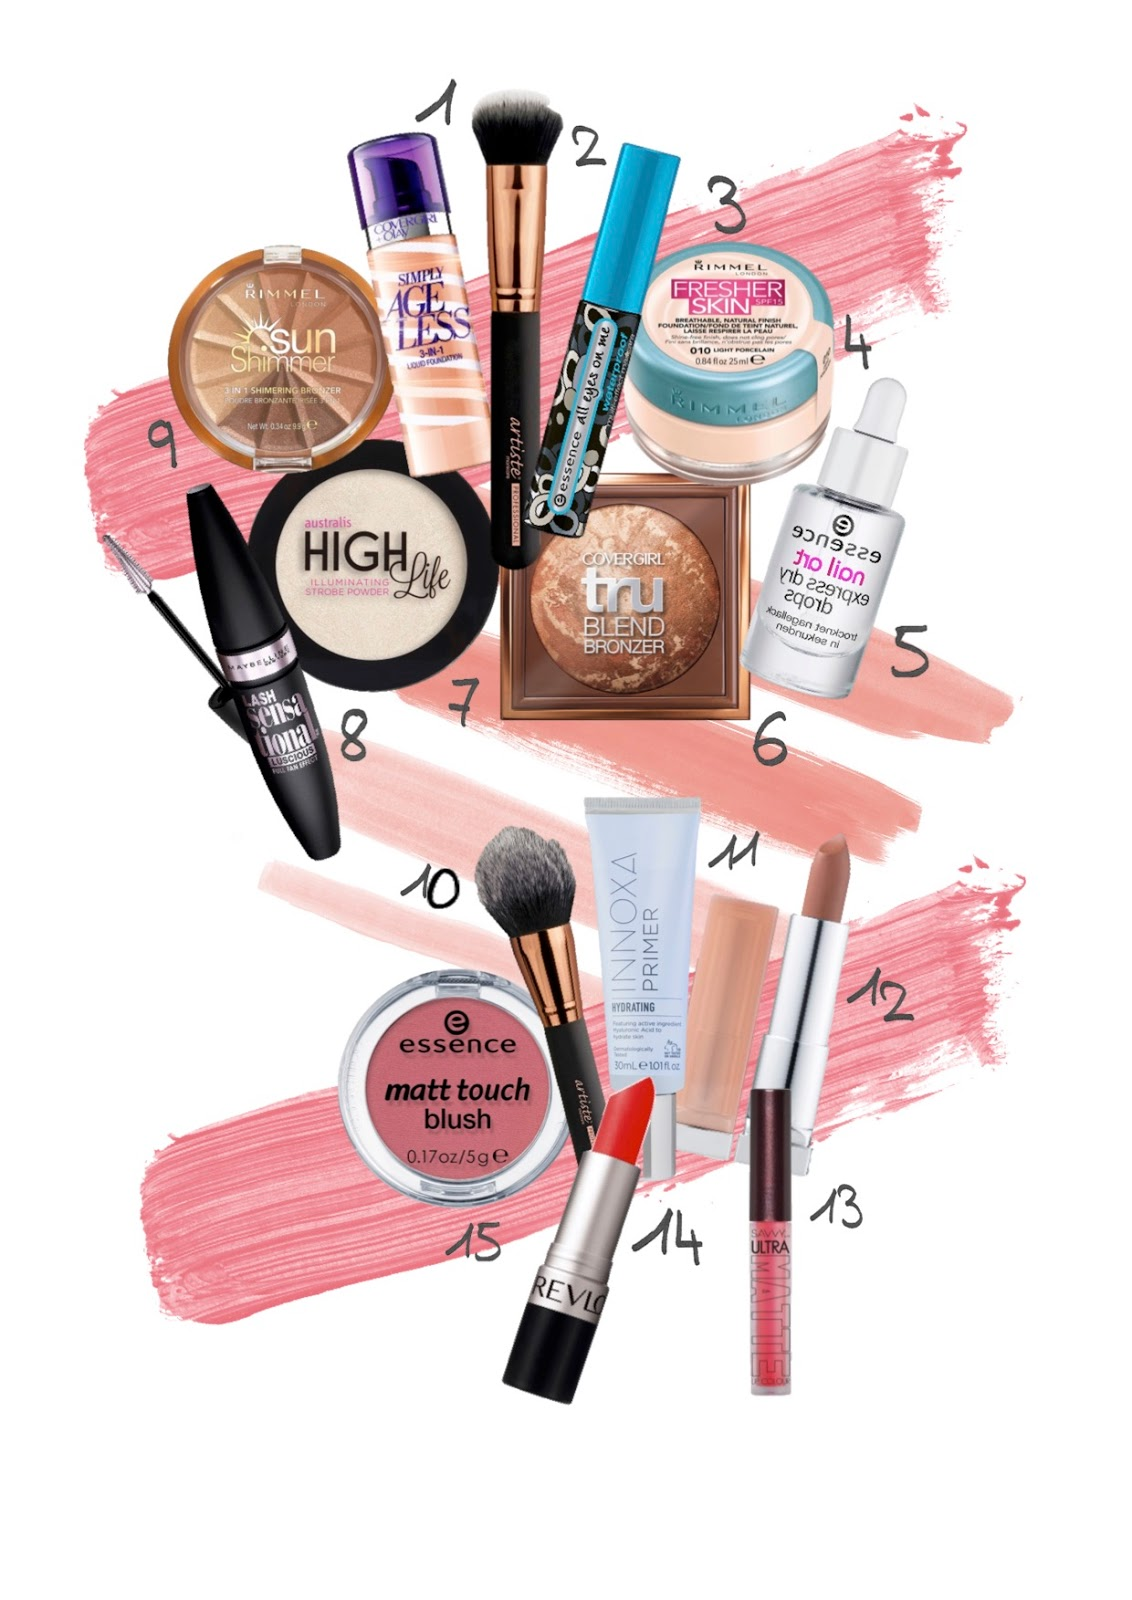 67d9c140dfd That bi-annual time of the year is here again where Priceline roll out  their famous 40% off cosmetics sale for two days. Last year I went both  times and ...